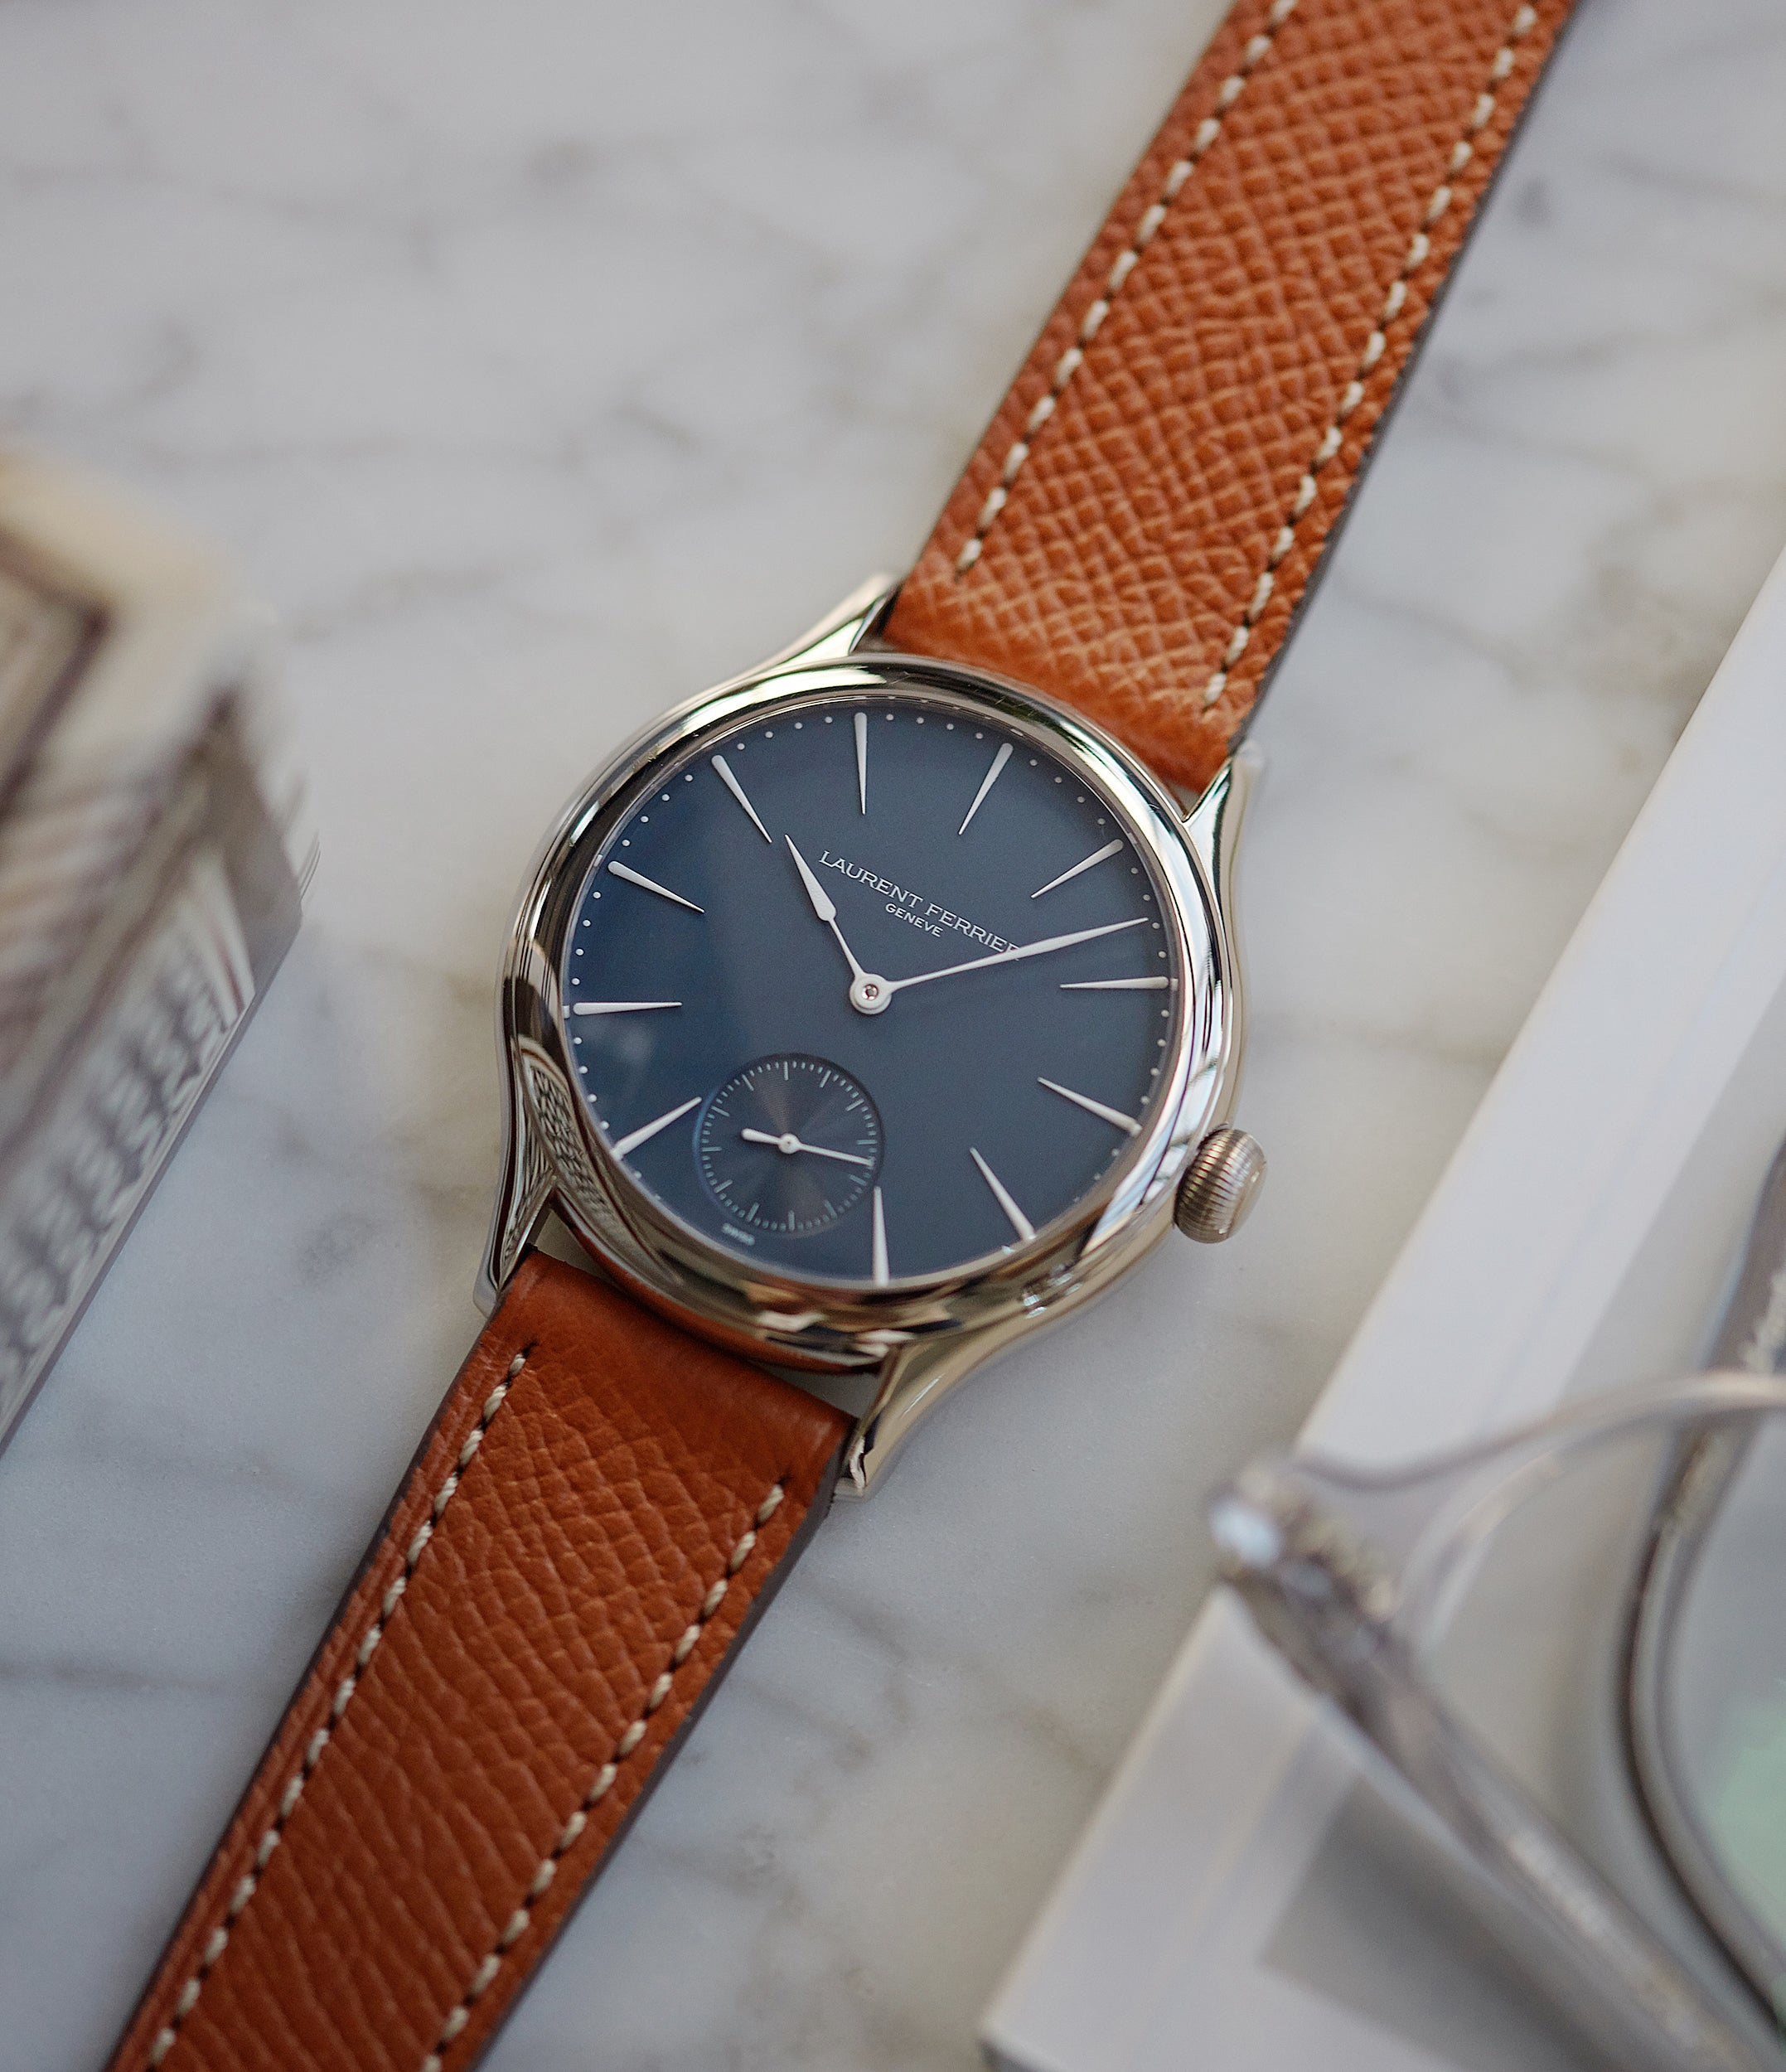 rare Laurent Ferrier Galet Micro-Rotor LF229.01 blue dial white gold watch for sale online at A Collected Man London UK approved seller of independent watchmaker Laurent Ferrier